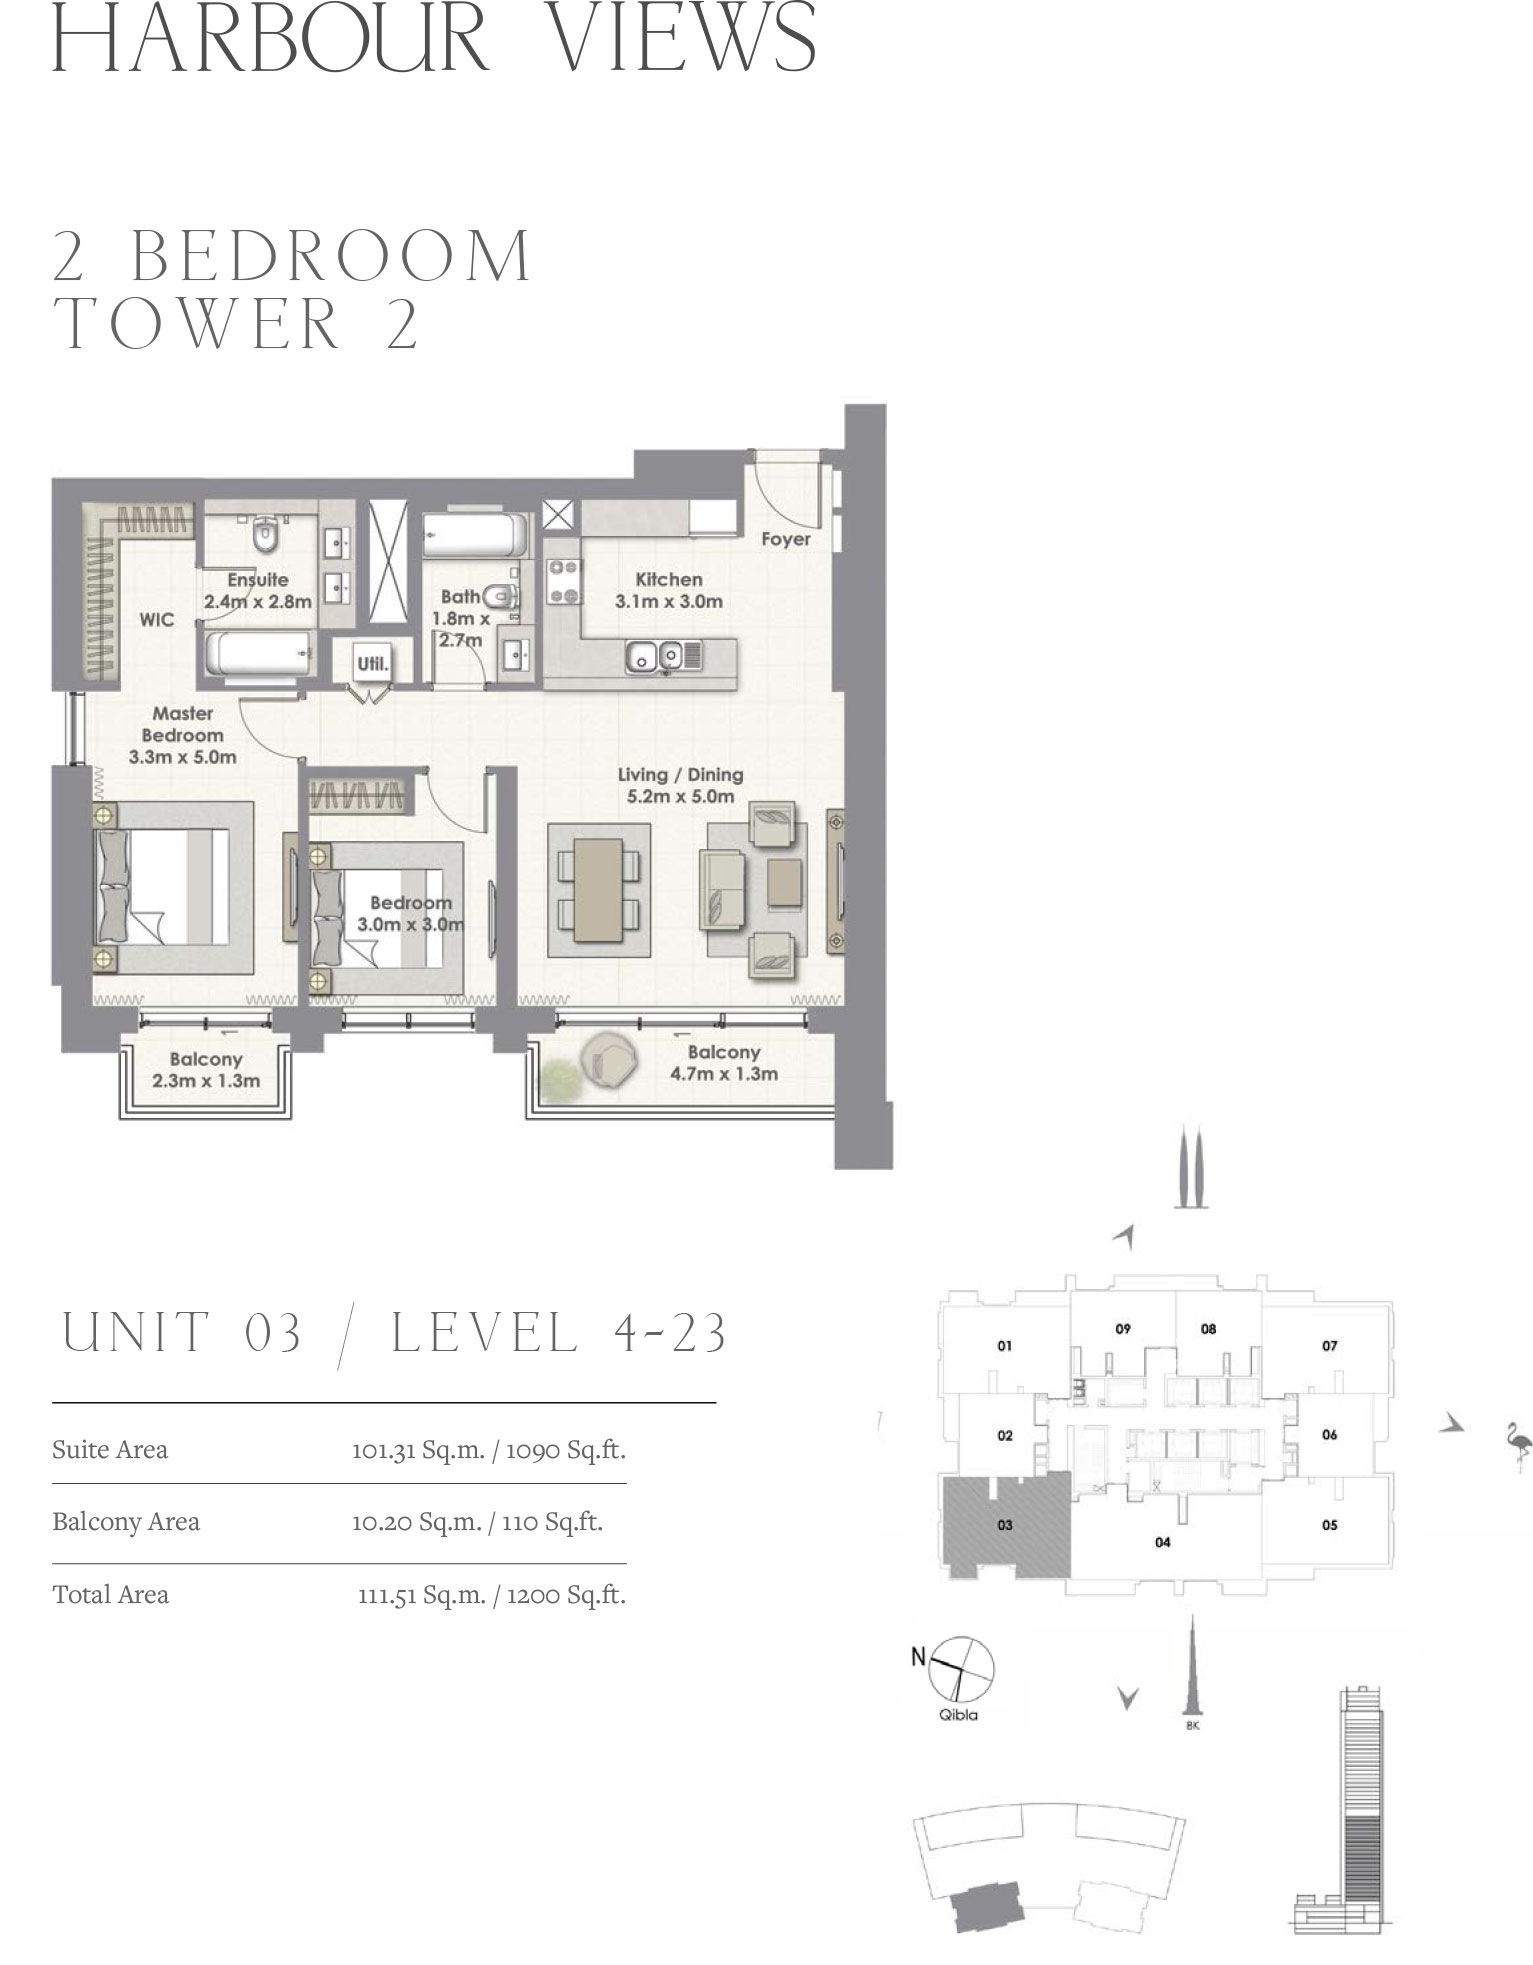 2 Bedroom Tower 2, Unit 03/Level 4-23